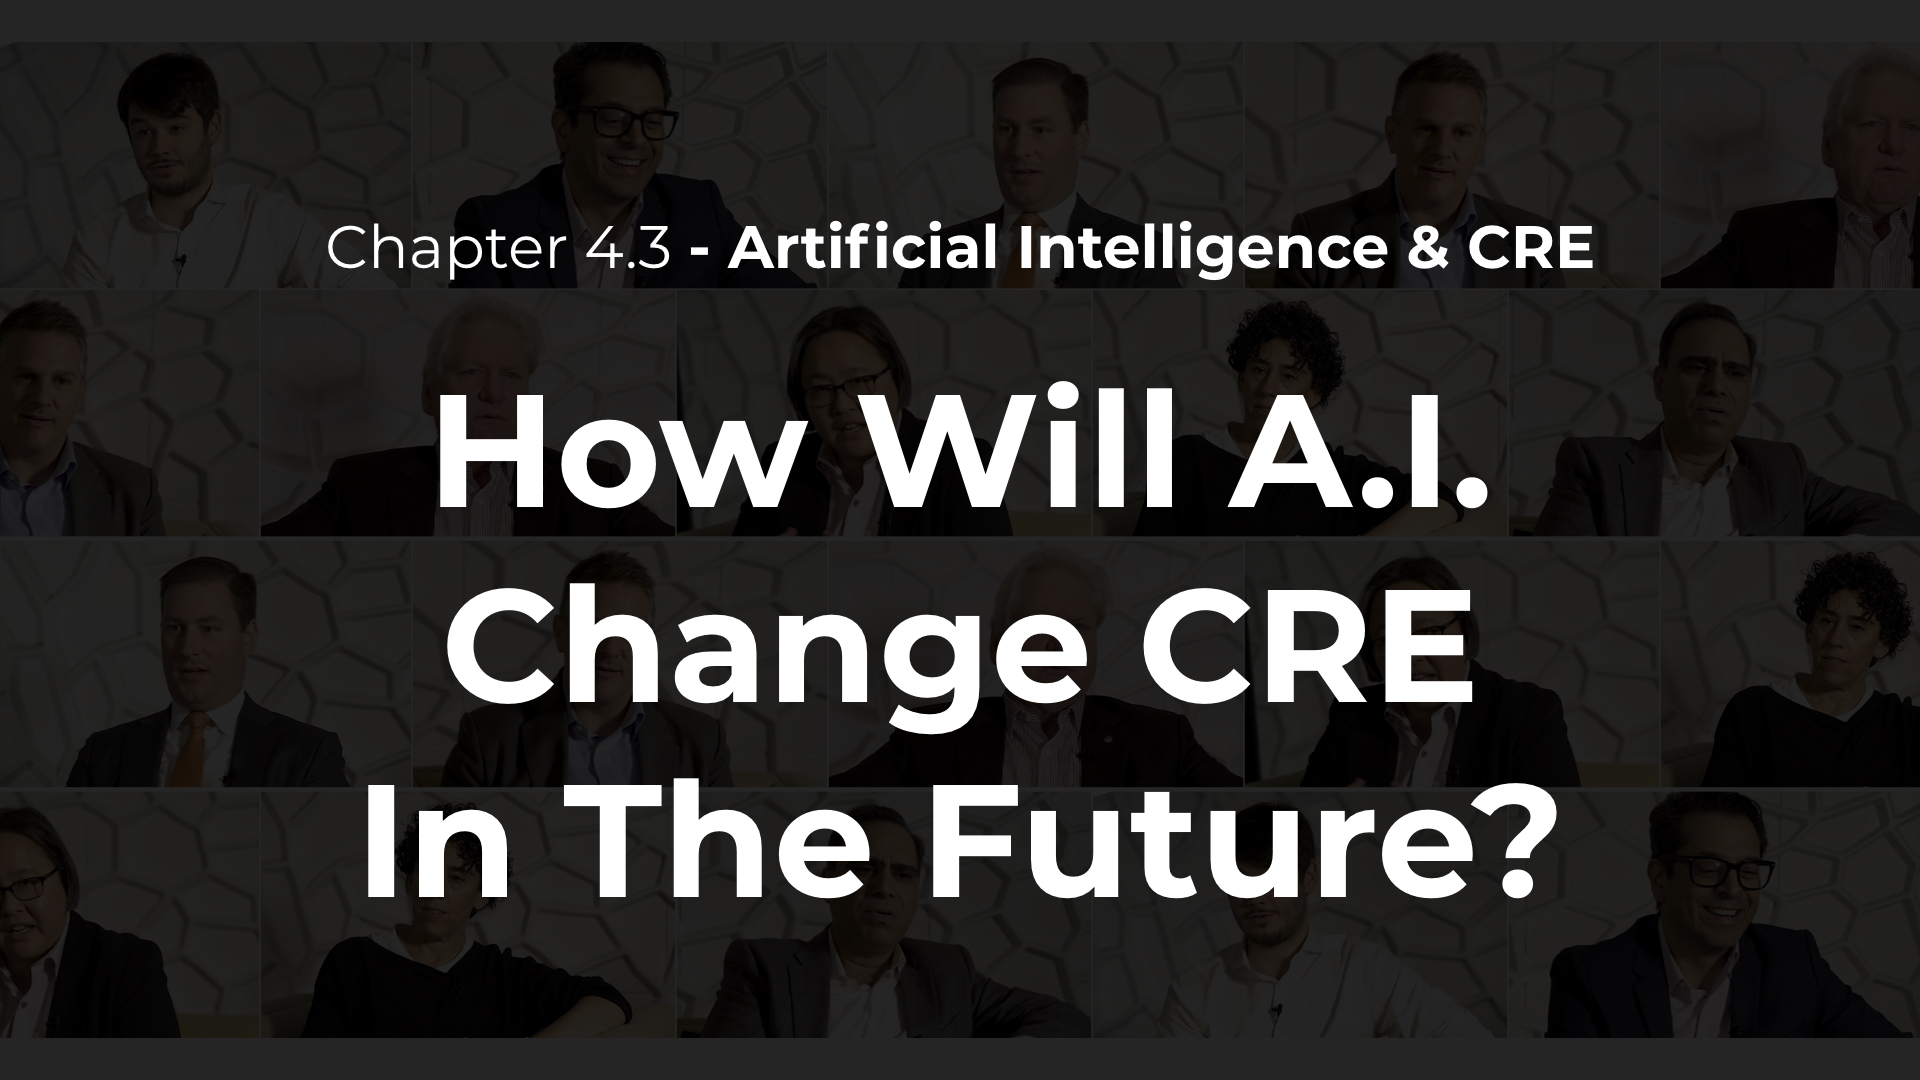 4.3 - How Will A.I. Change CRE In The Future?